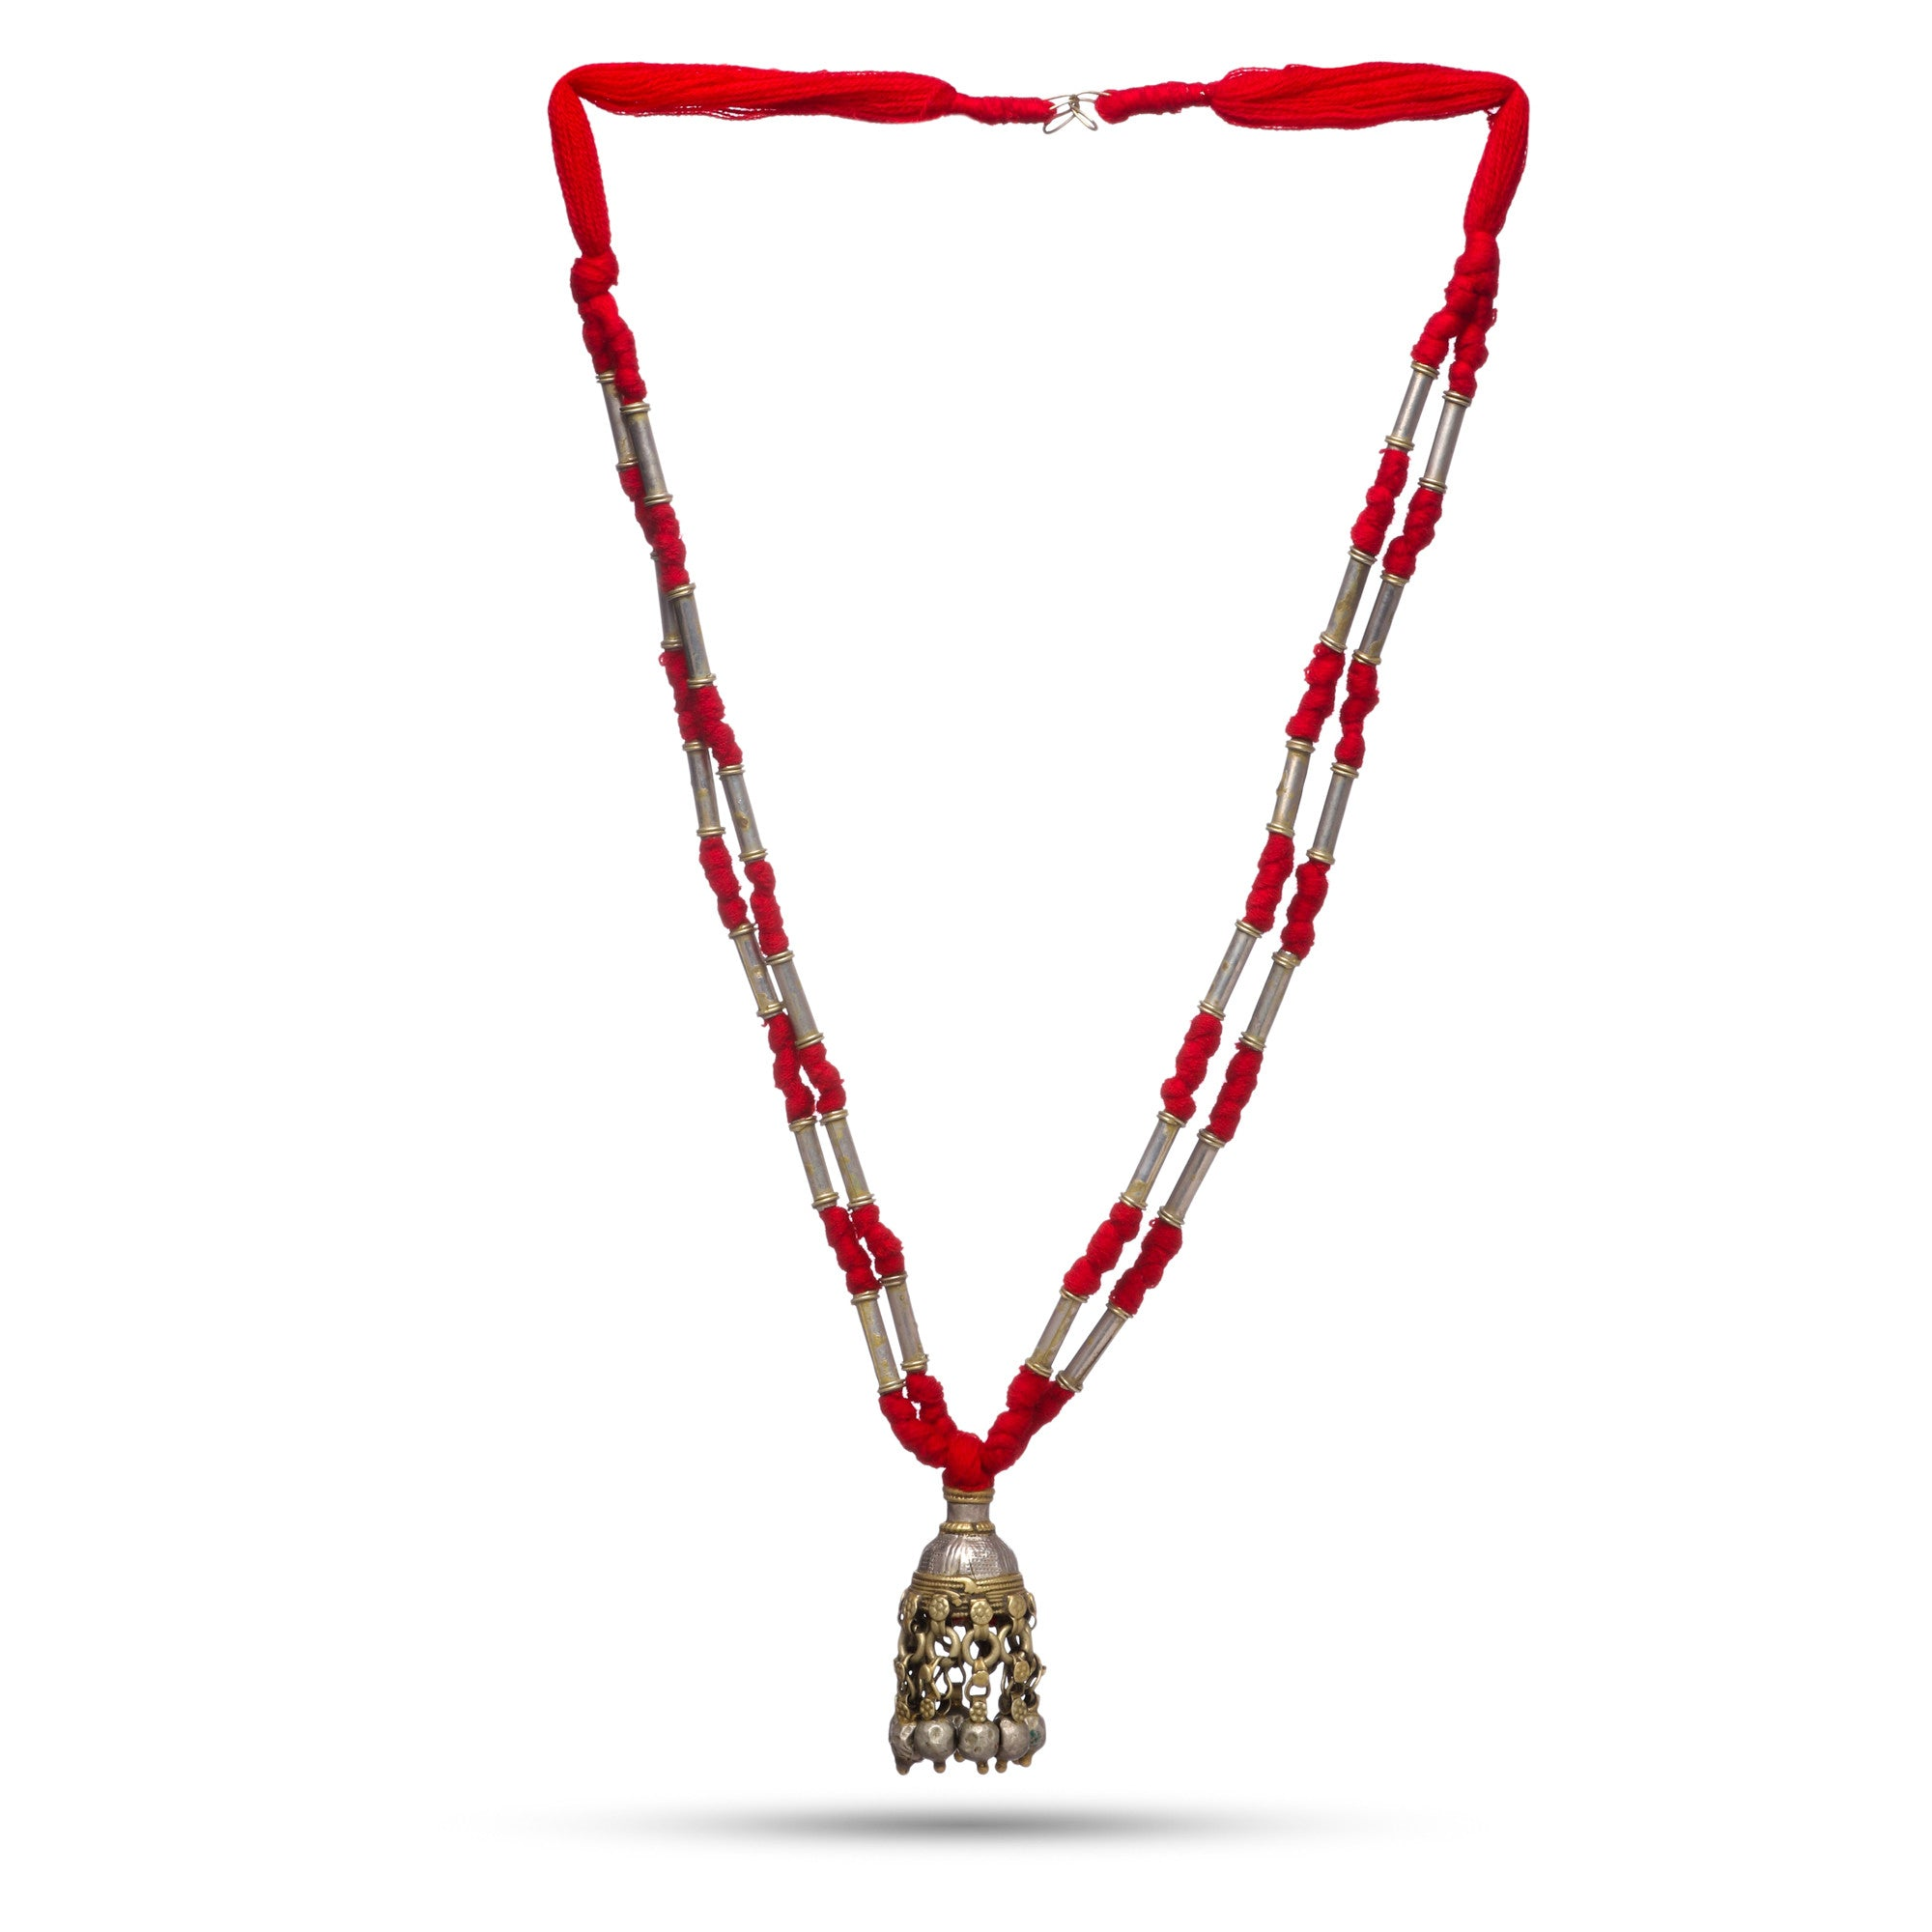 Tribal bell pendant with red thread chain